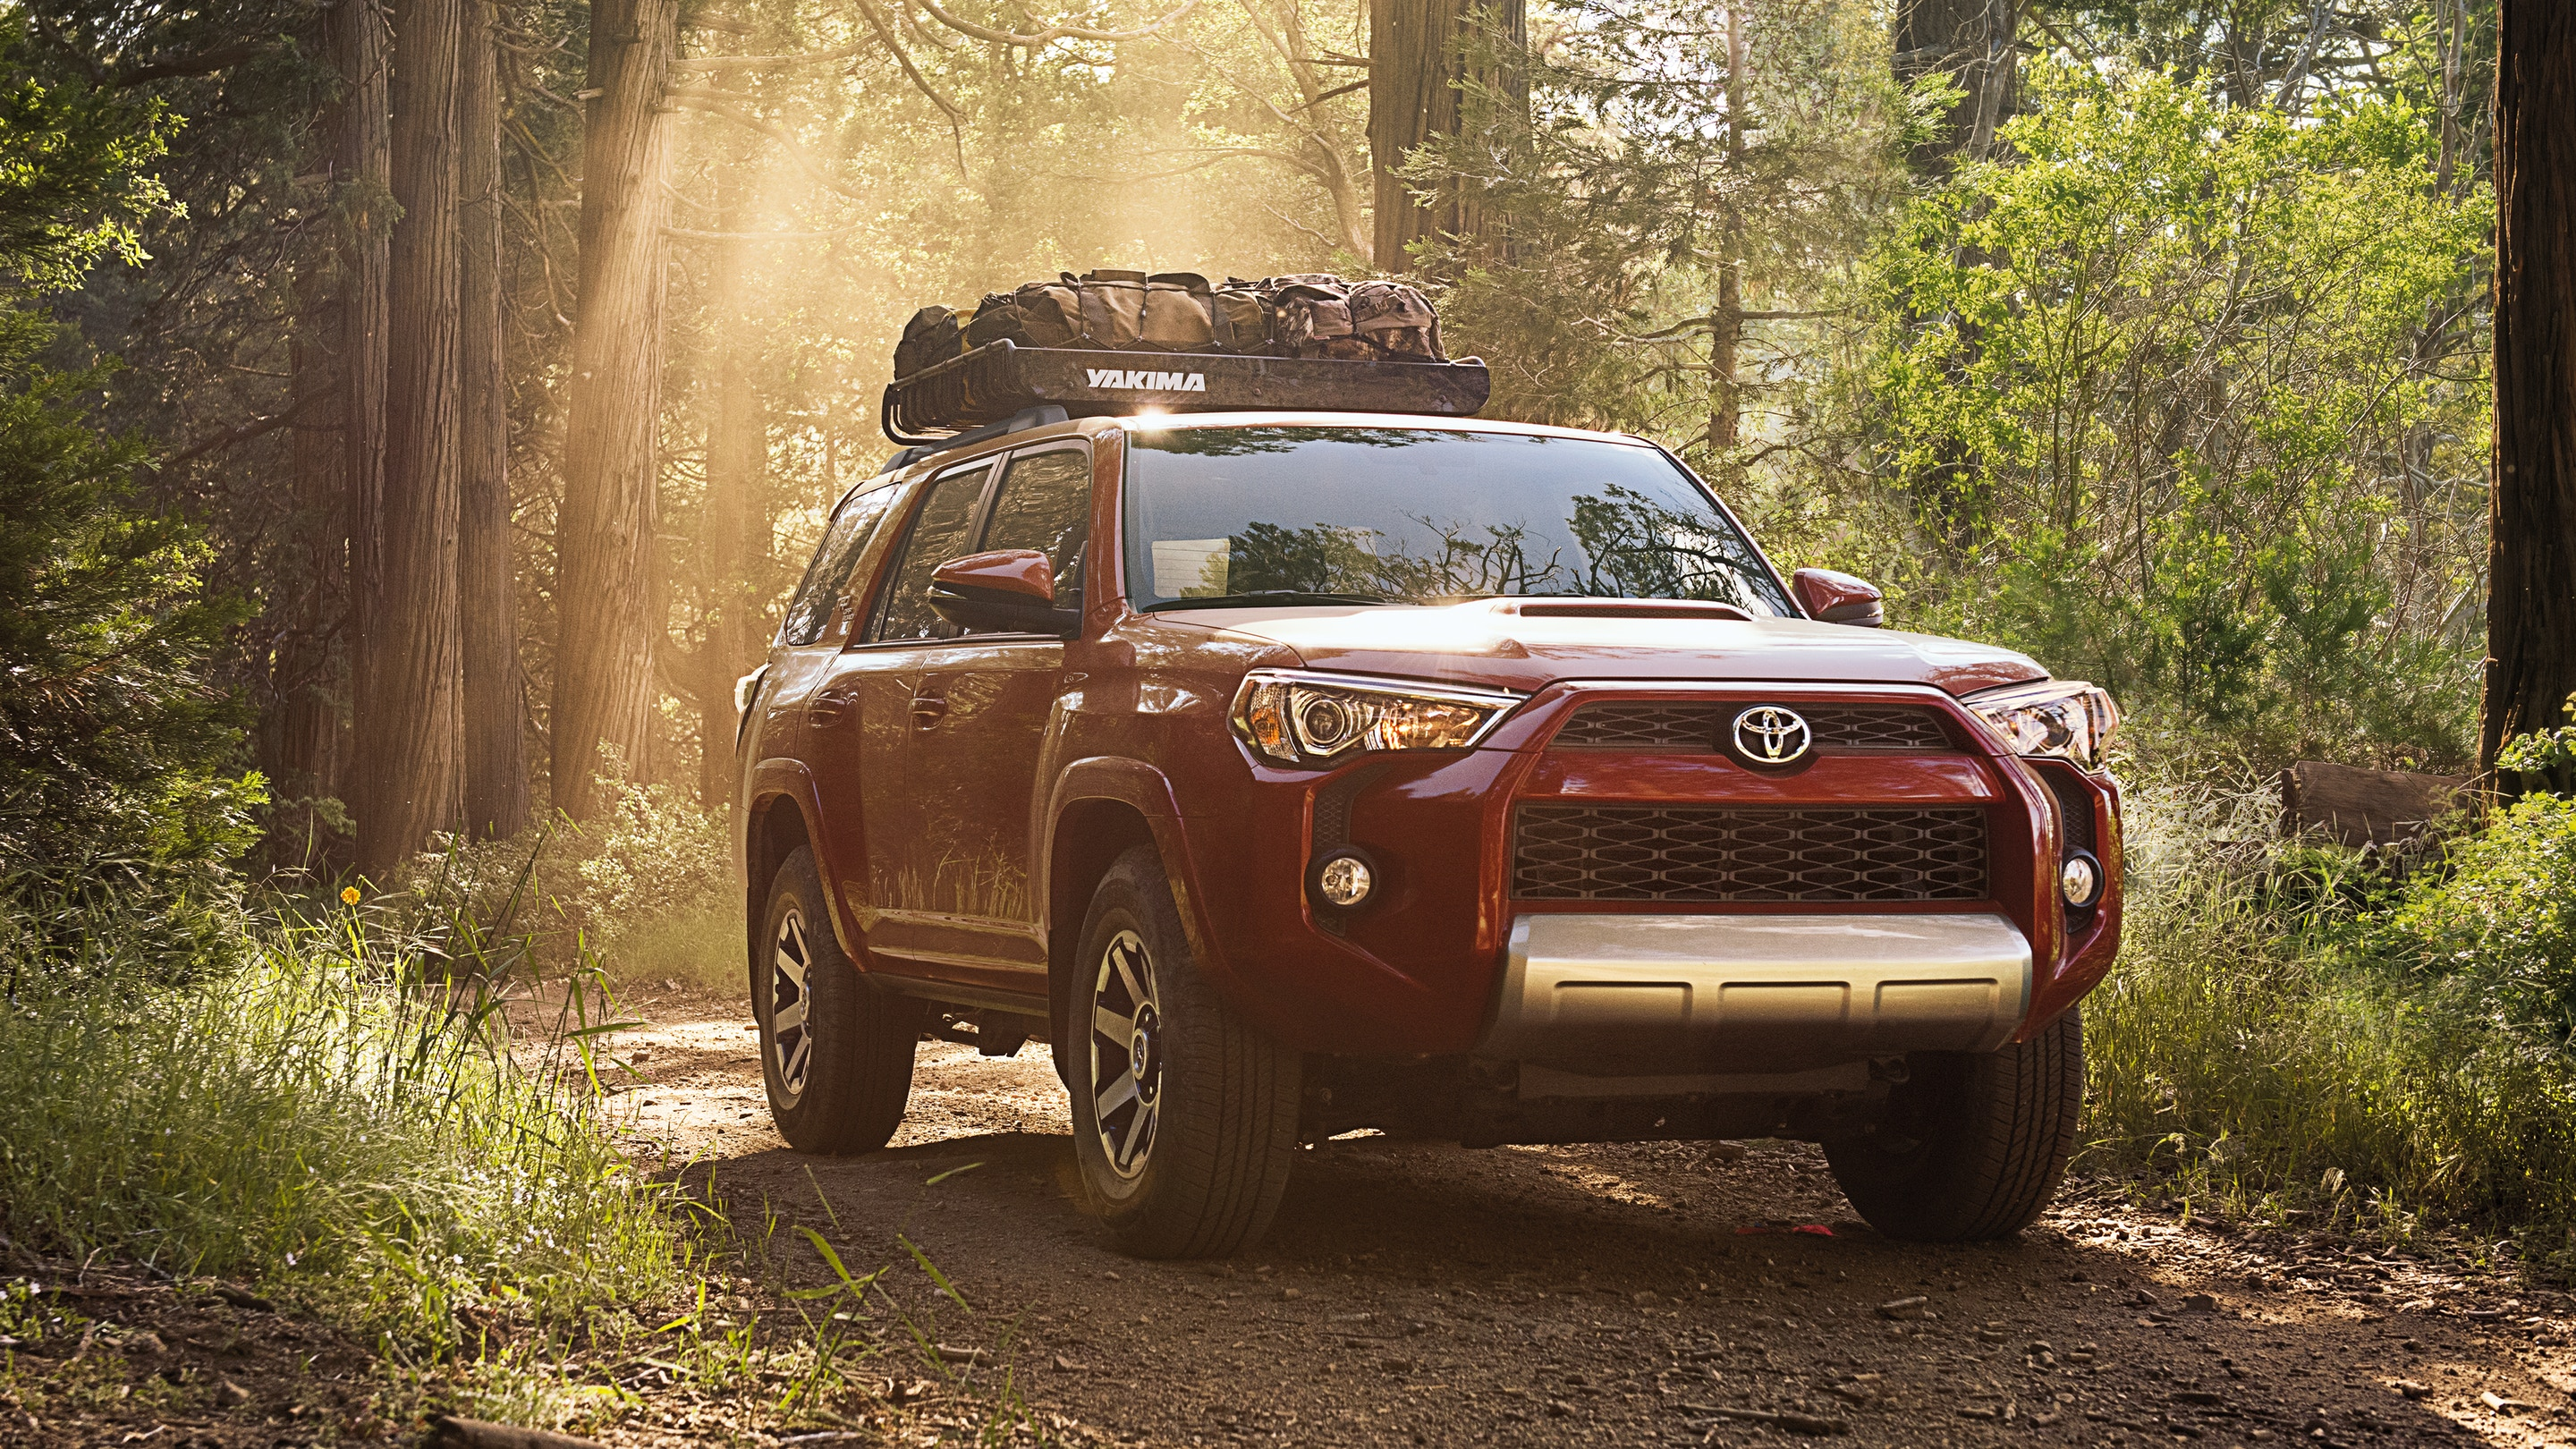 2019 Toyota 4Runner vs 2019 Toyota Highlander in Jacksonville, FL